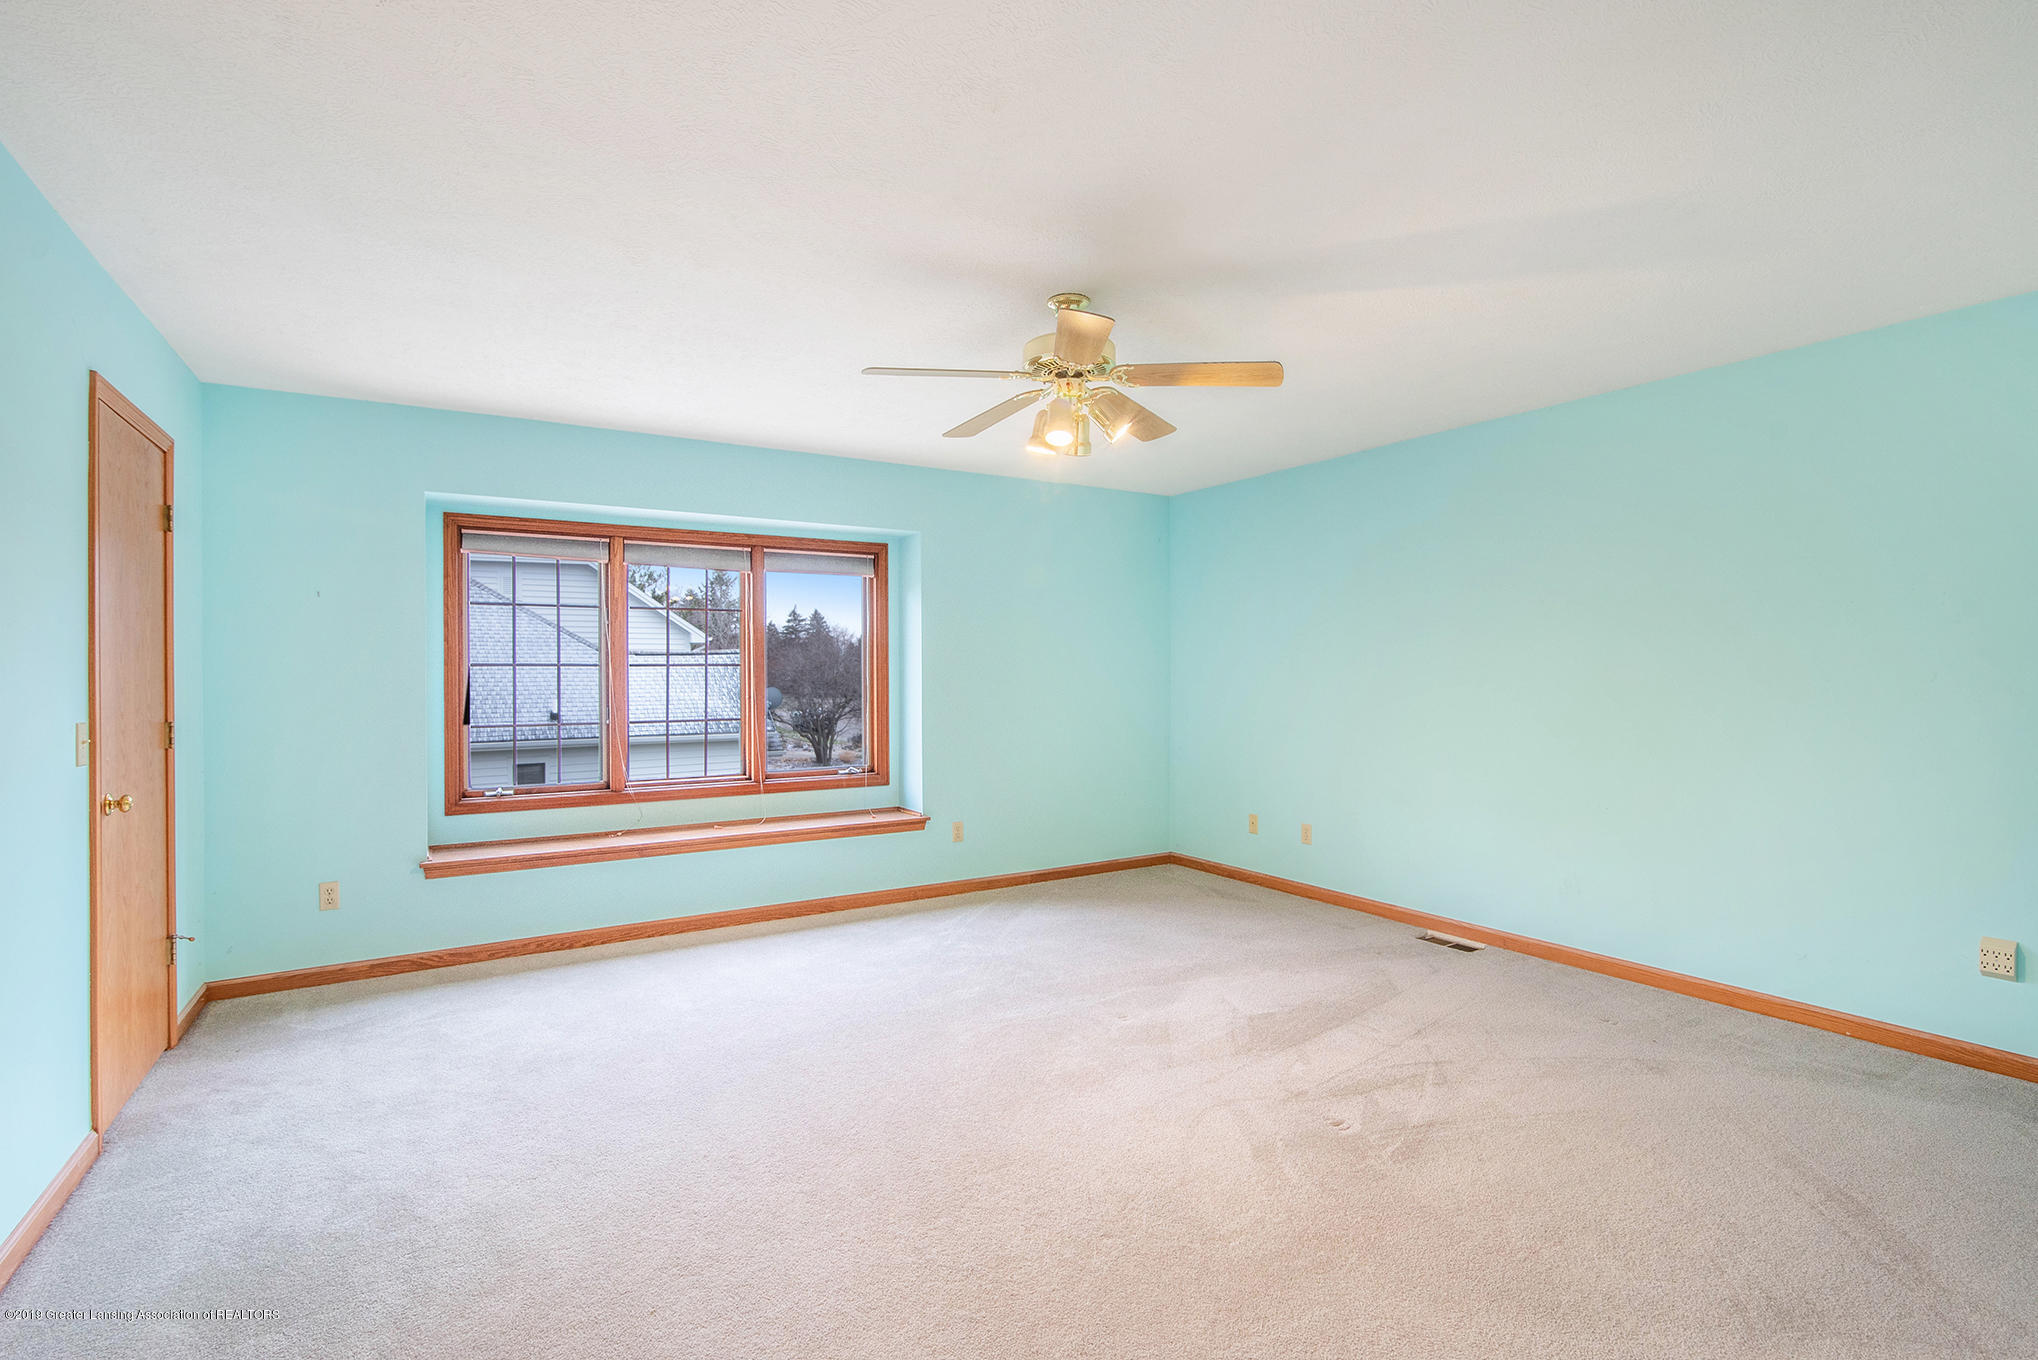 3752 Chippendale Dr - 1 - 12